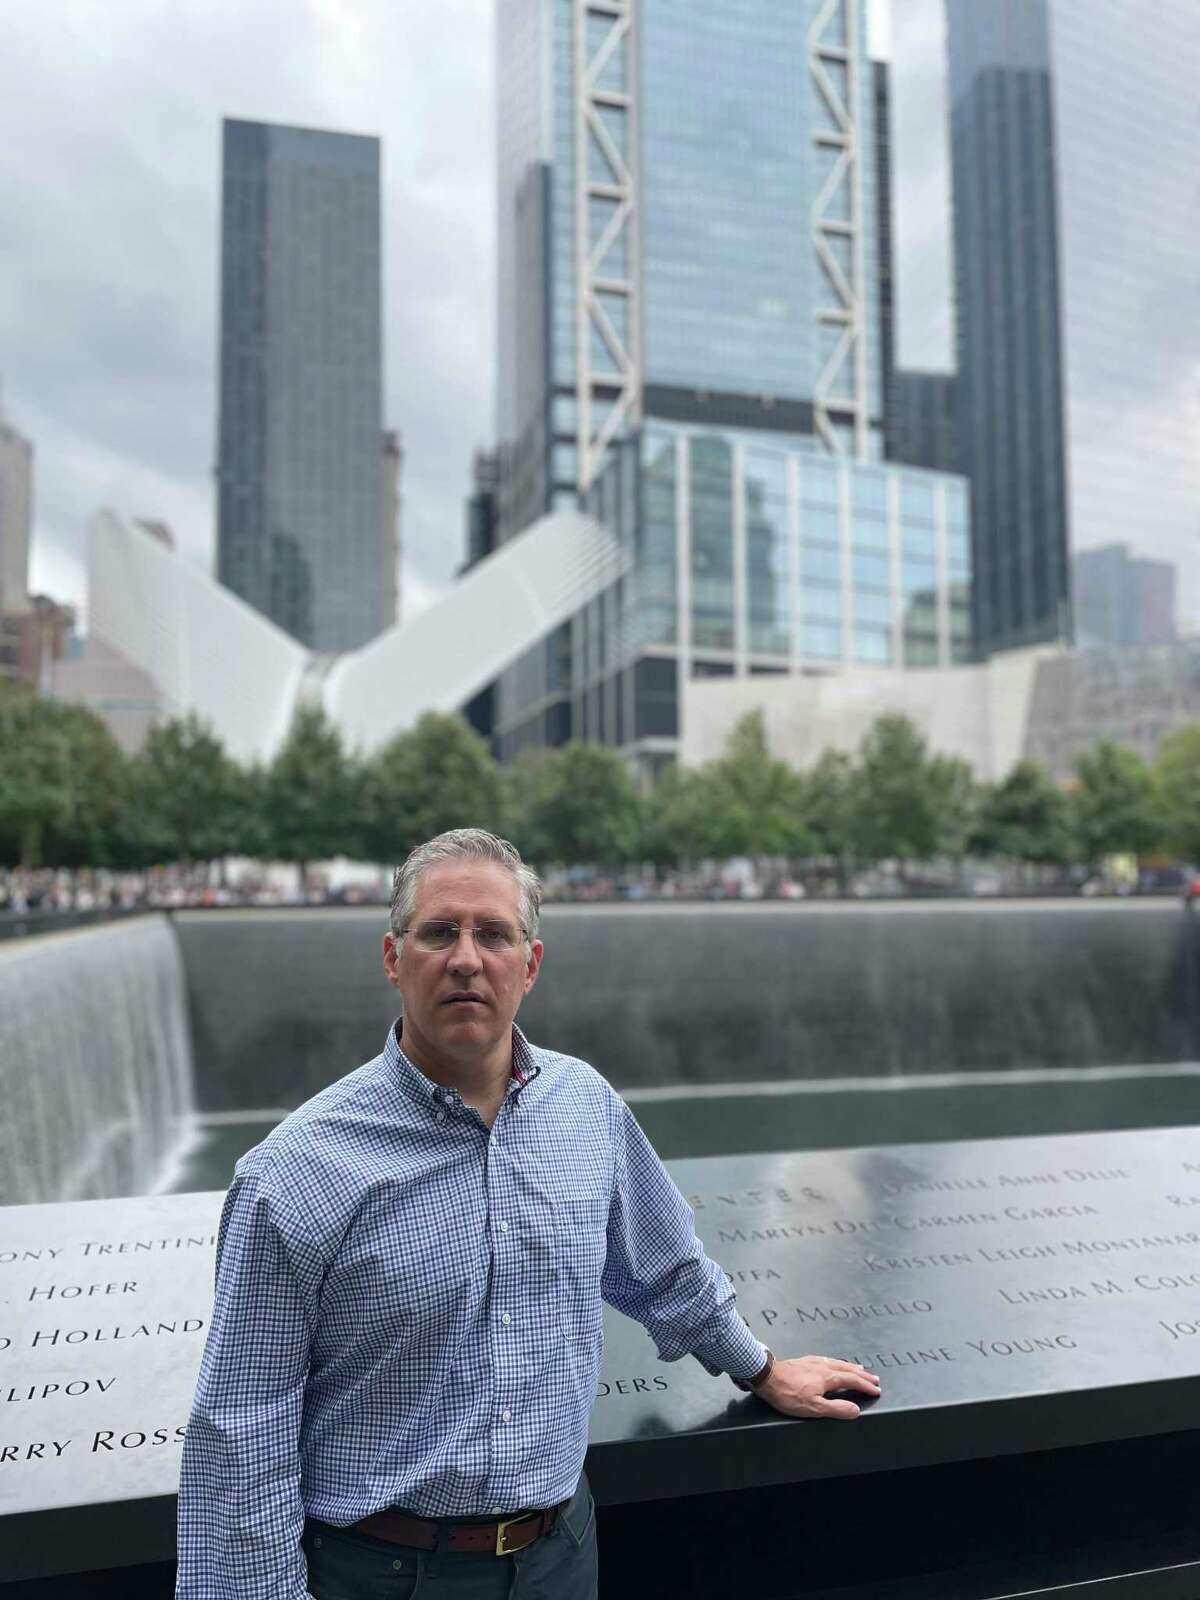 Darien resident Brian Moss stands beside the reflecting pools that commemorate where the World Trade Center's twin towers stood in lower Manhattan, during a visit to the site on Sept. 5, 2021. Moss was working in nearby offices at 44 Wall St., on Sept. 11, 2001 and saw the South Tower collapse.